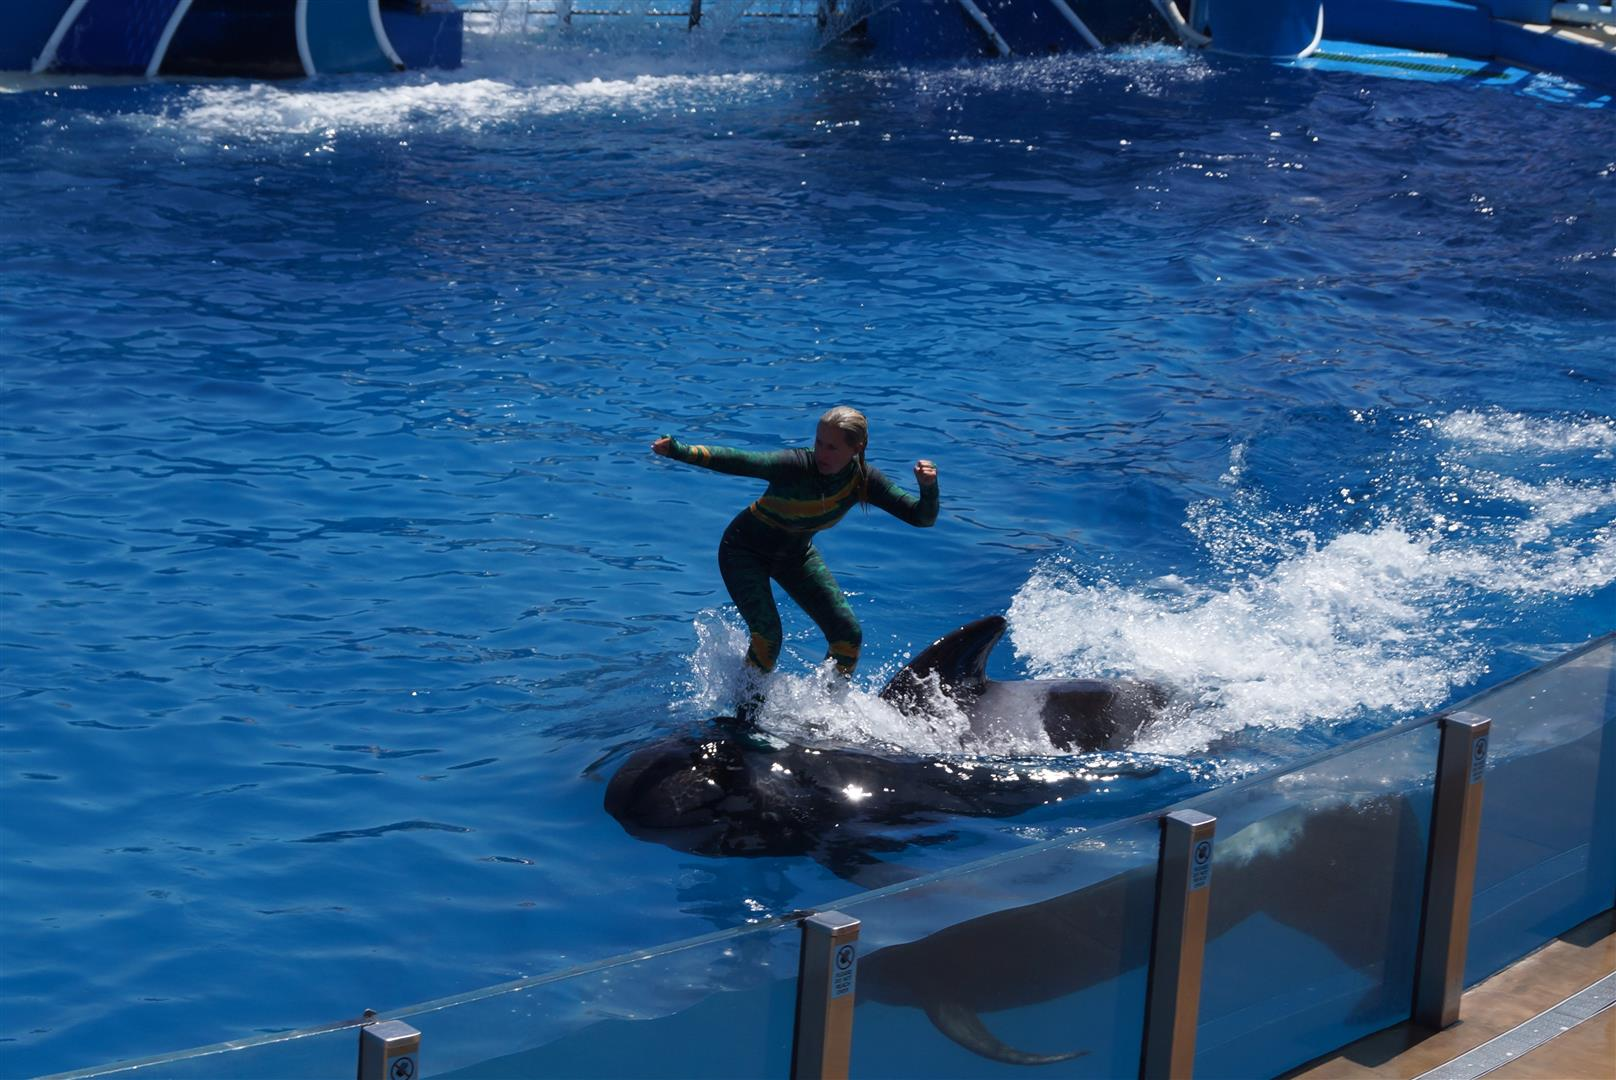 Whale-Surfing!